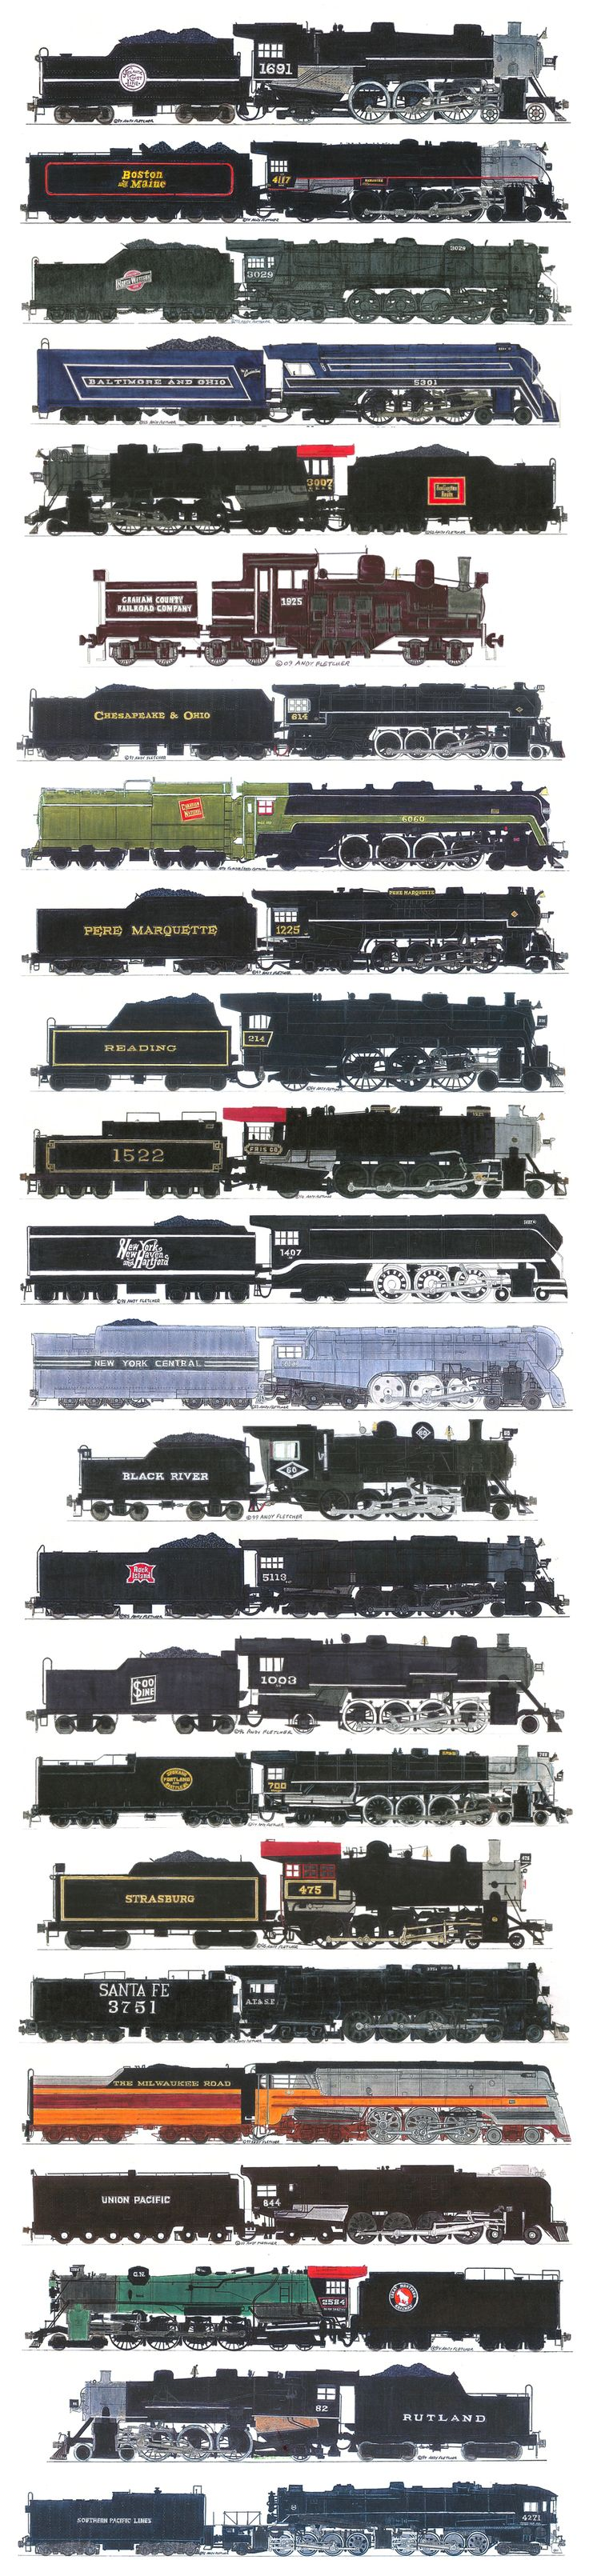 Steam Engine Drawings